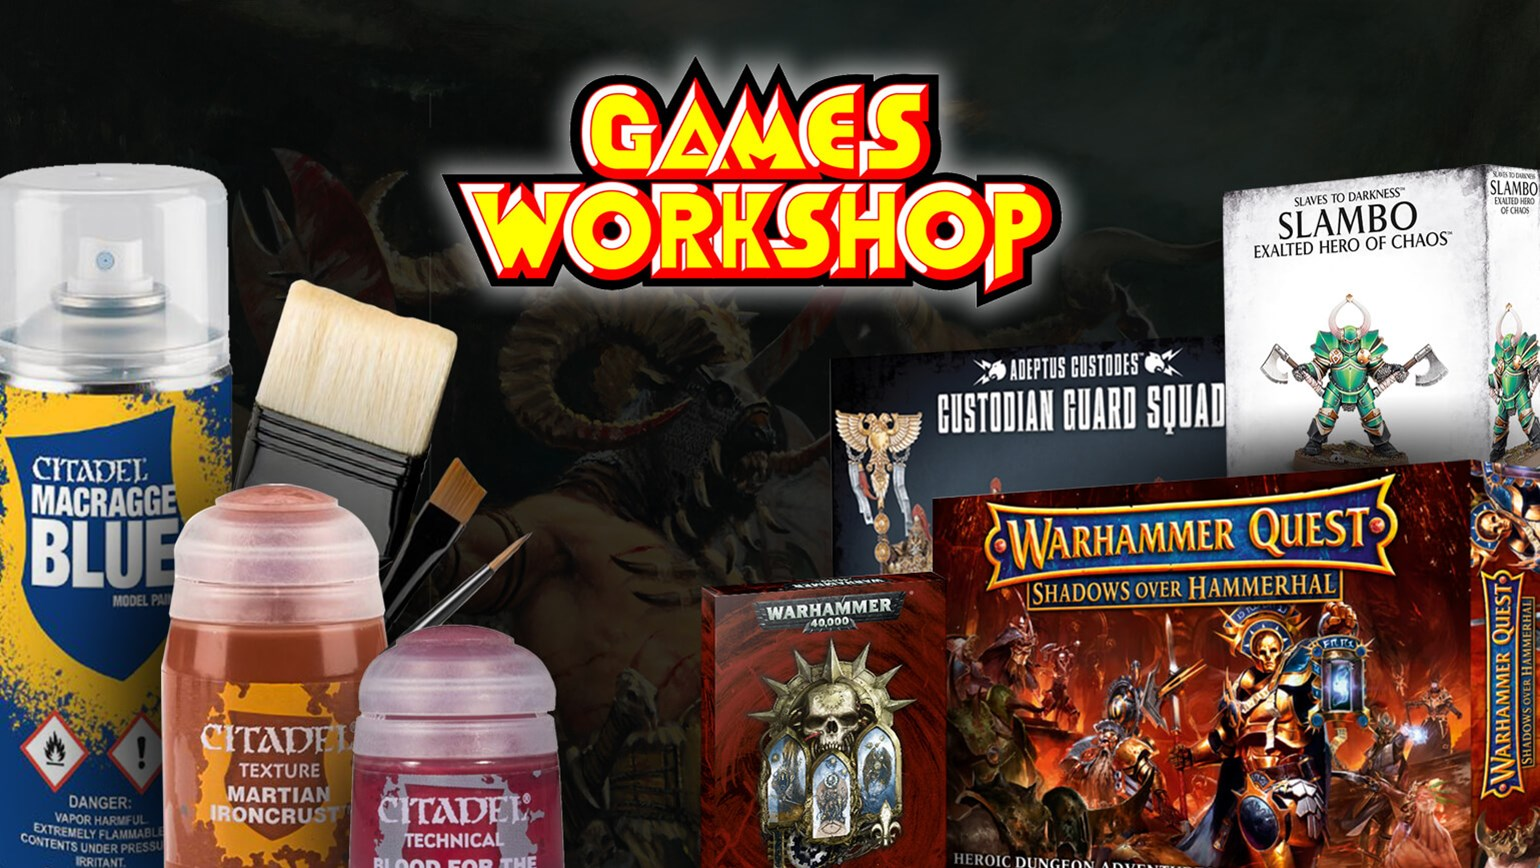 Games Workshop Products Now Available Exclusively for Pro Stores